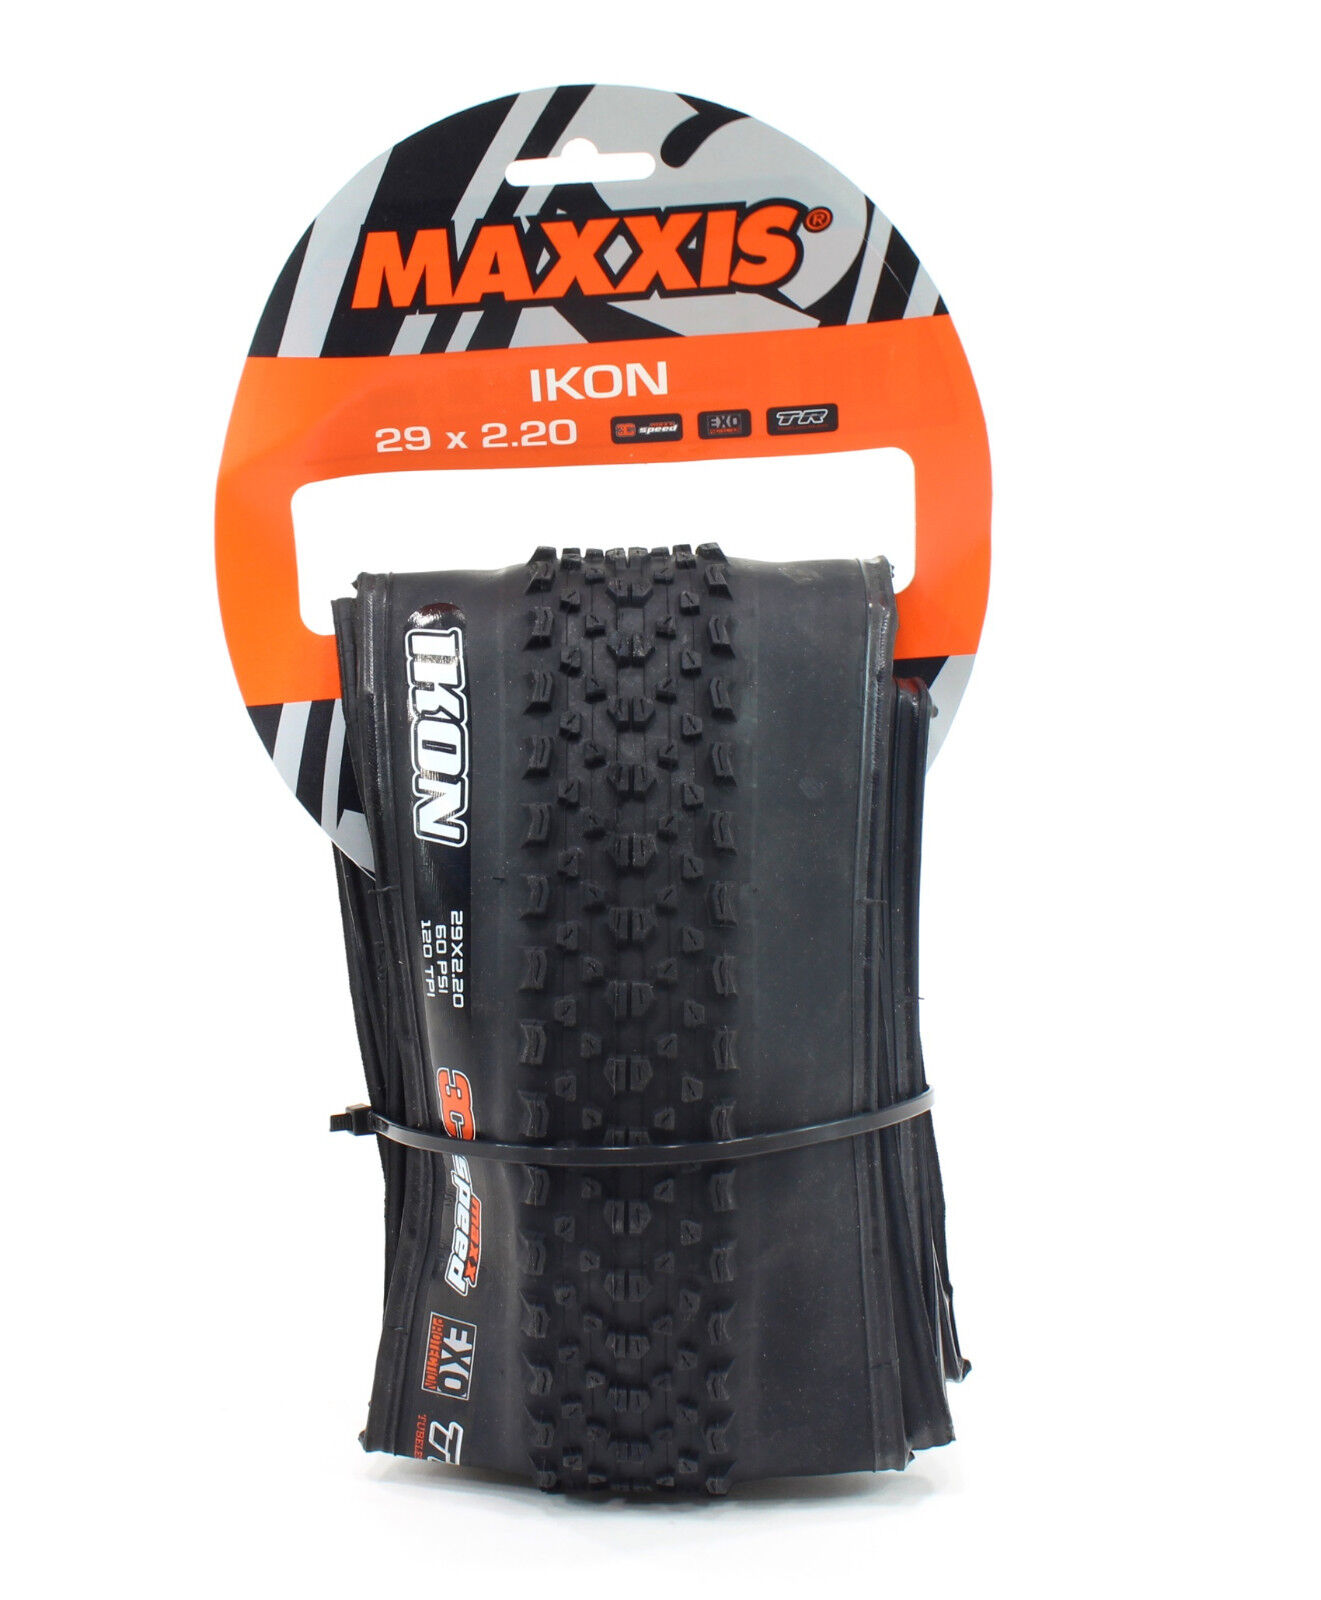 Maxxis Ikon 29 x 2.20 3C EXO Tubeless Ready 3C Maxx Speed MTB Tire